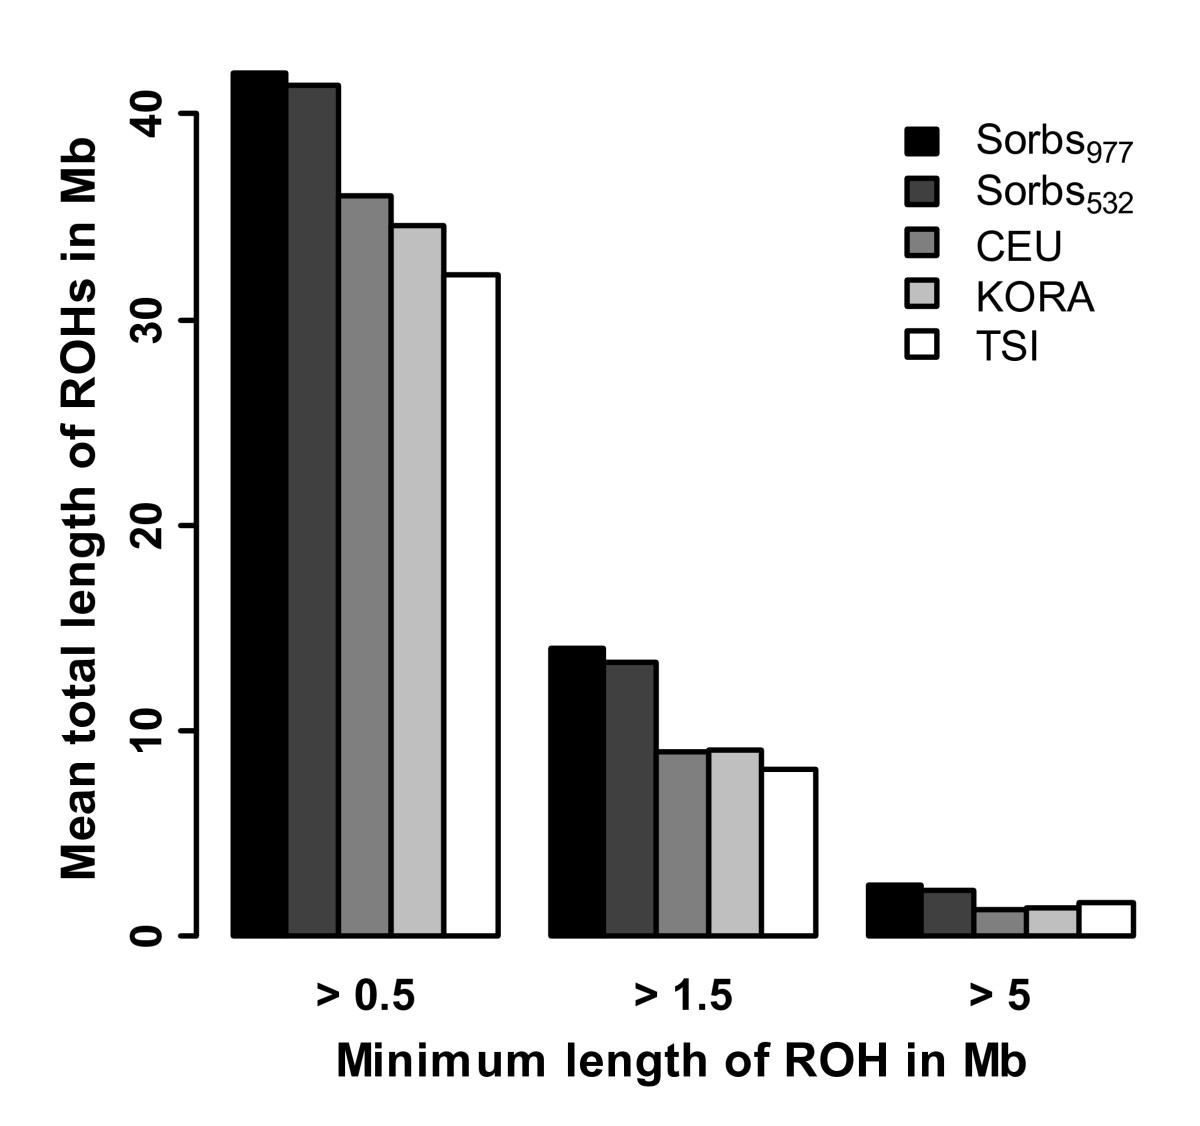 https://static-content.springer.com/image/art%3A10.1186%2F1471-2156-12-67/MediaObjects/12863_2011_Article_928_Fig4_HTML.jpg